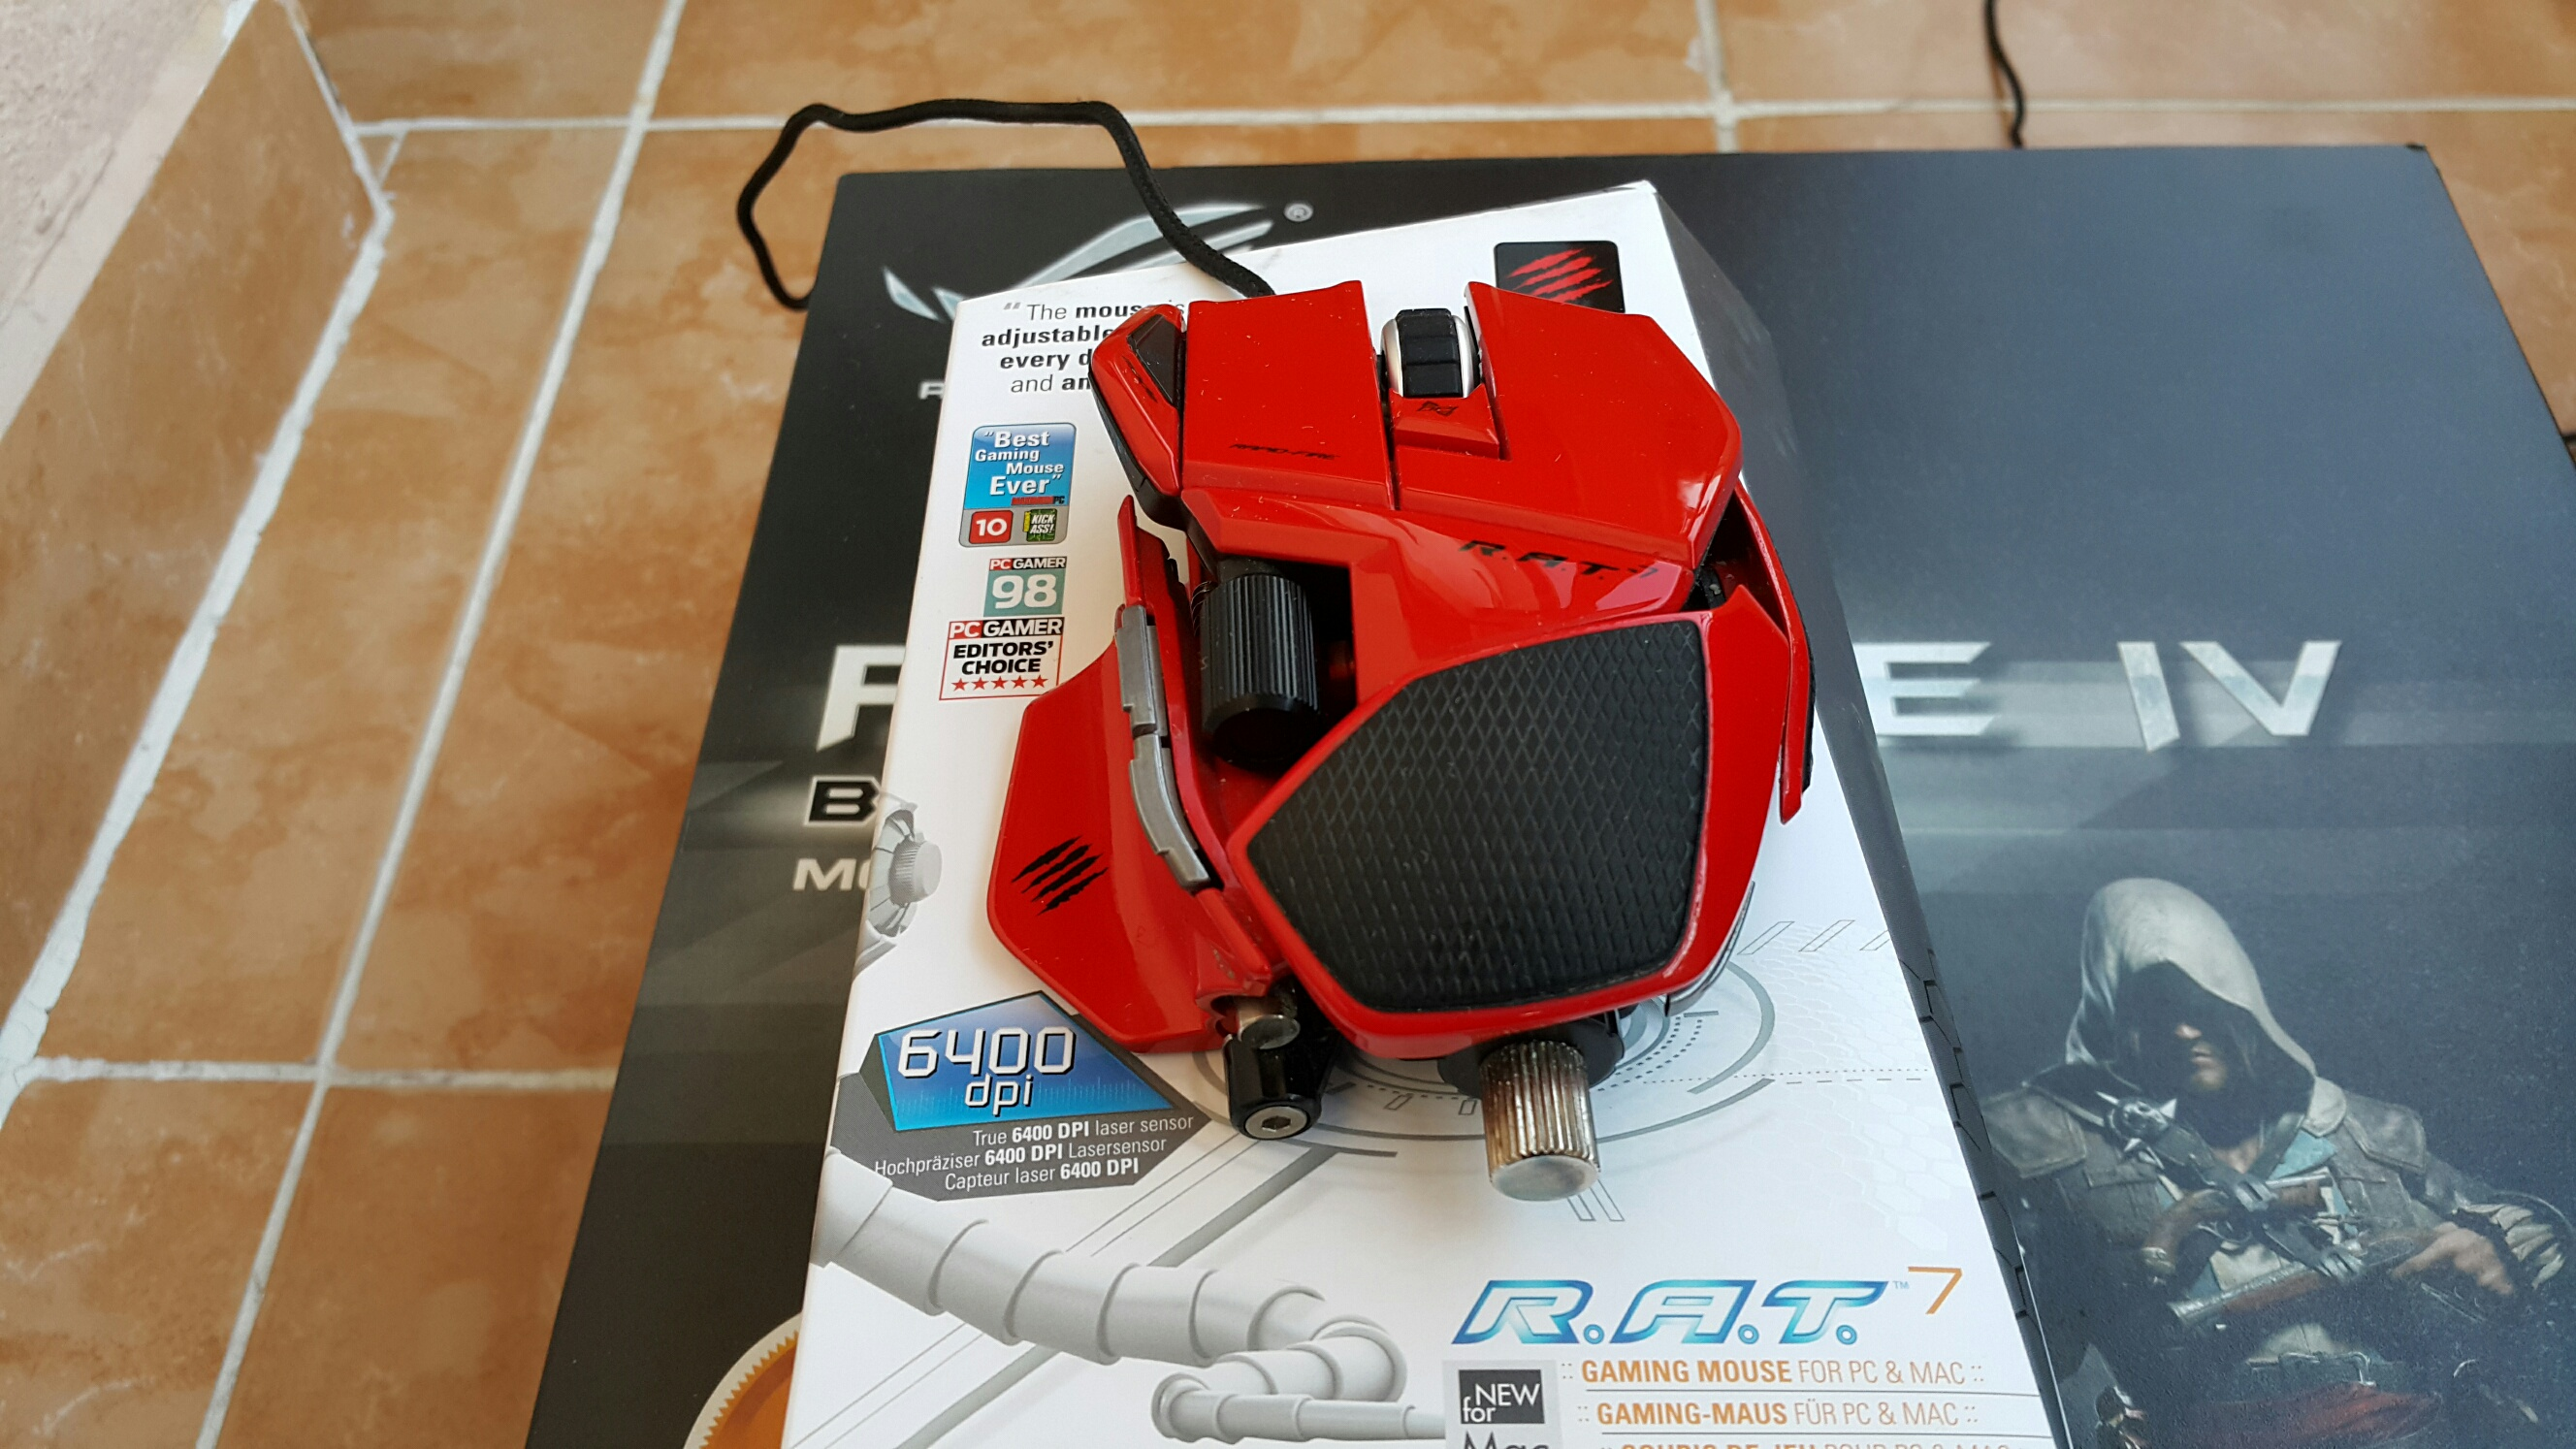 CYBORG MADCATZ R A T 7 Gaming Mouse LOGITECH G700s GAMING MOUSE Sayfa 1 1